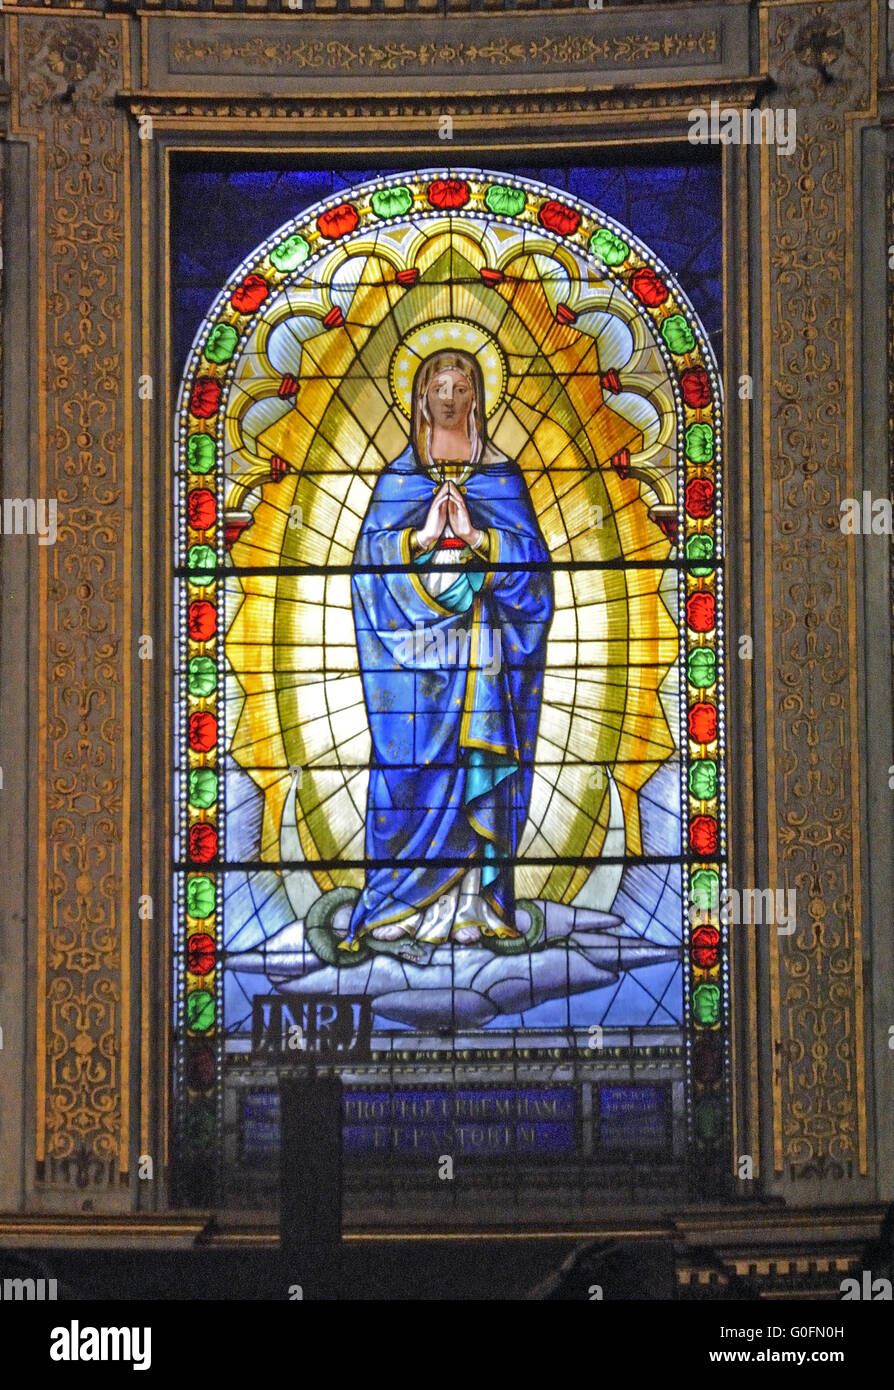 church window - Stock Image